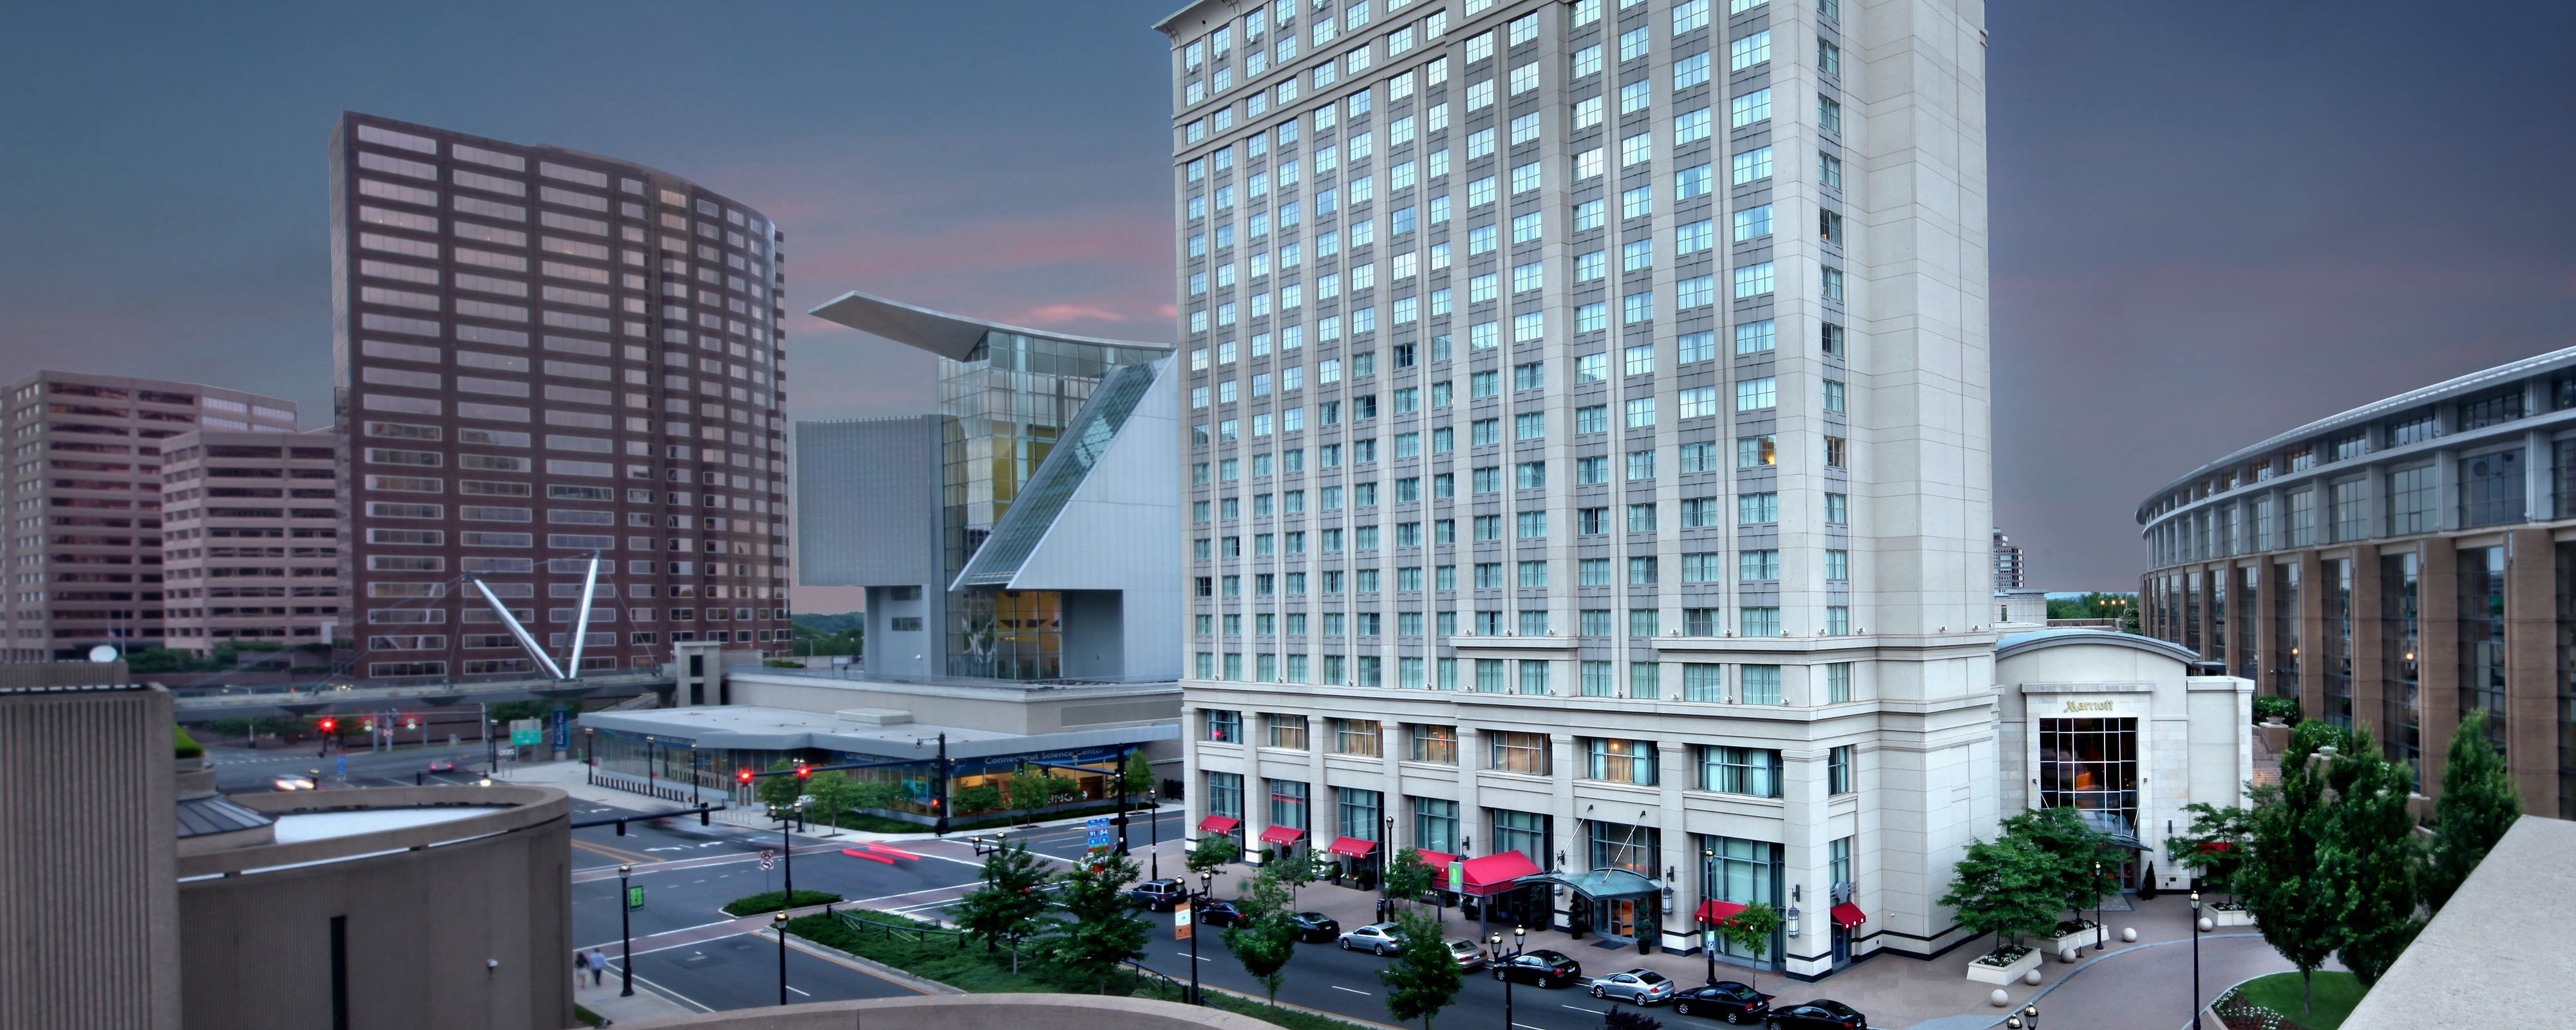 Ct Hotel Downtown Hartford Hotels | Hartford Marriott Downtown